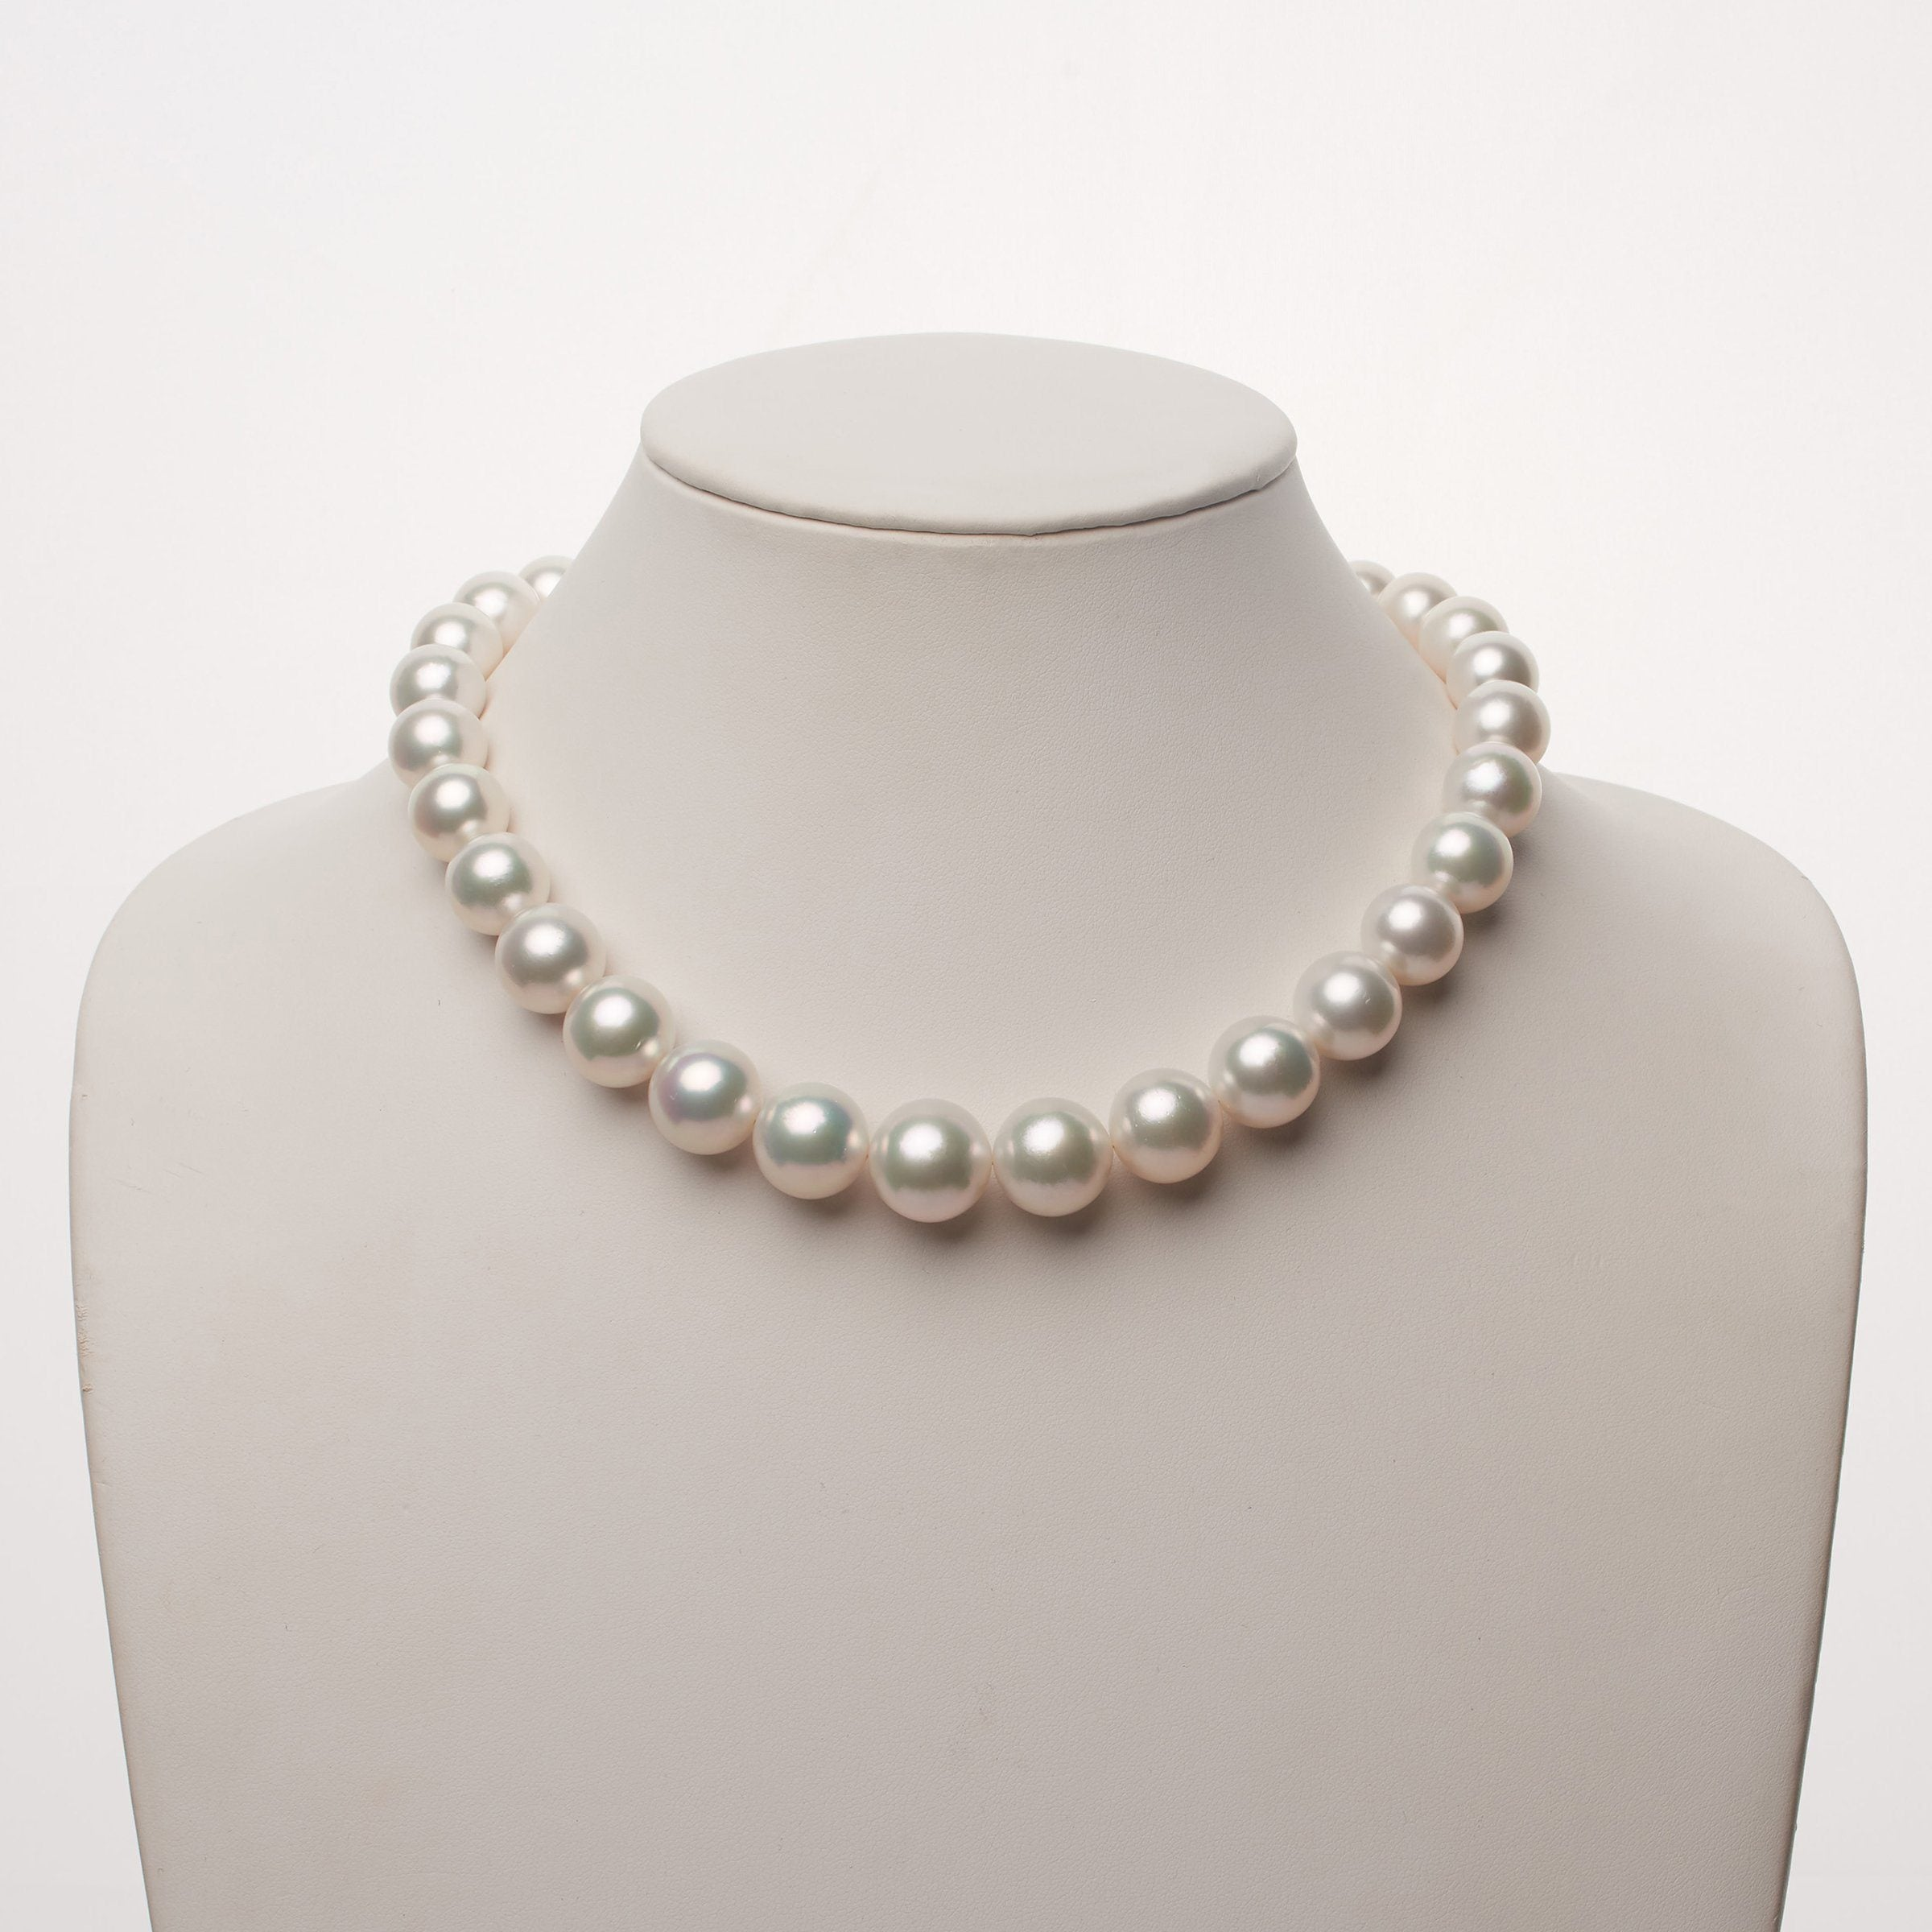 12.1-15.9 mm AA+/AAA White South Sea Round Pearl Necklace